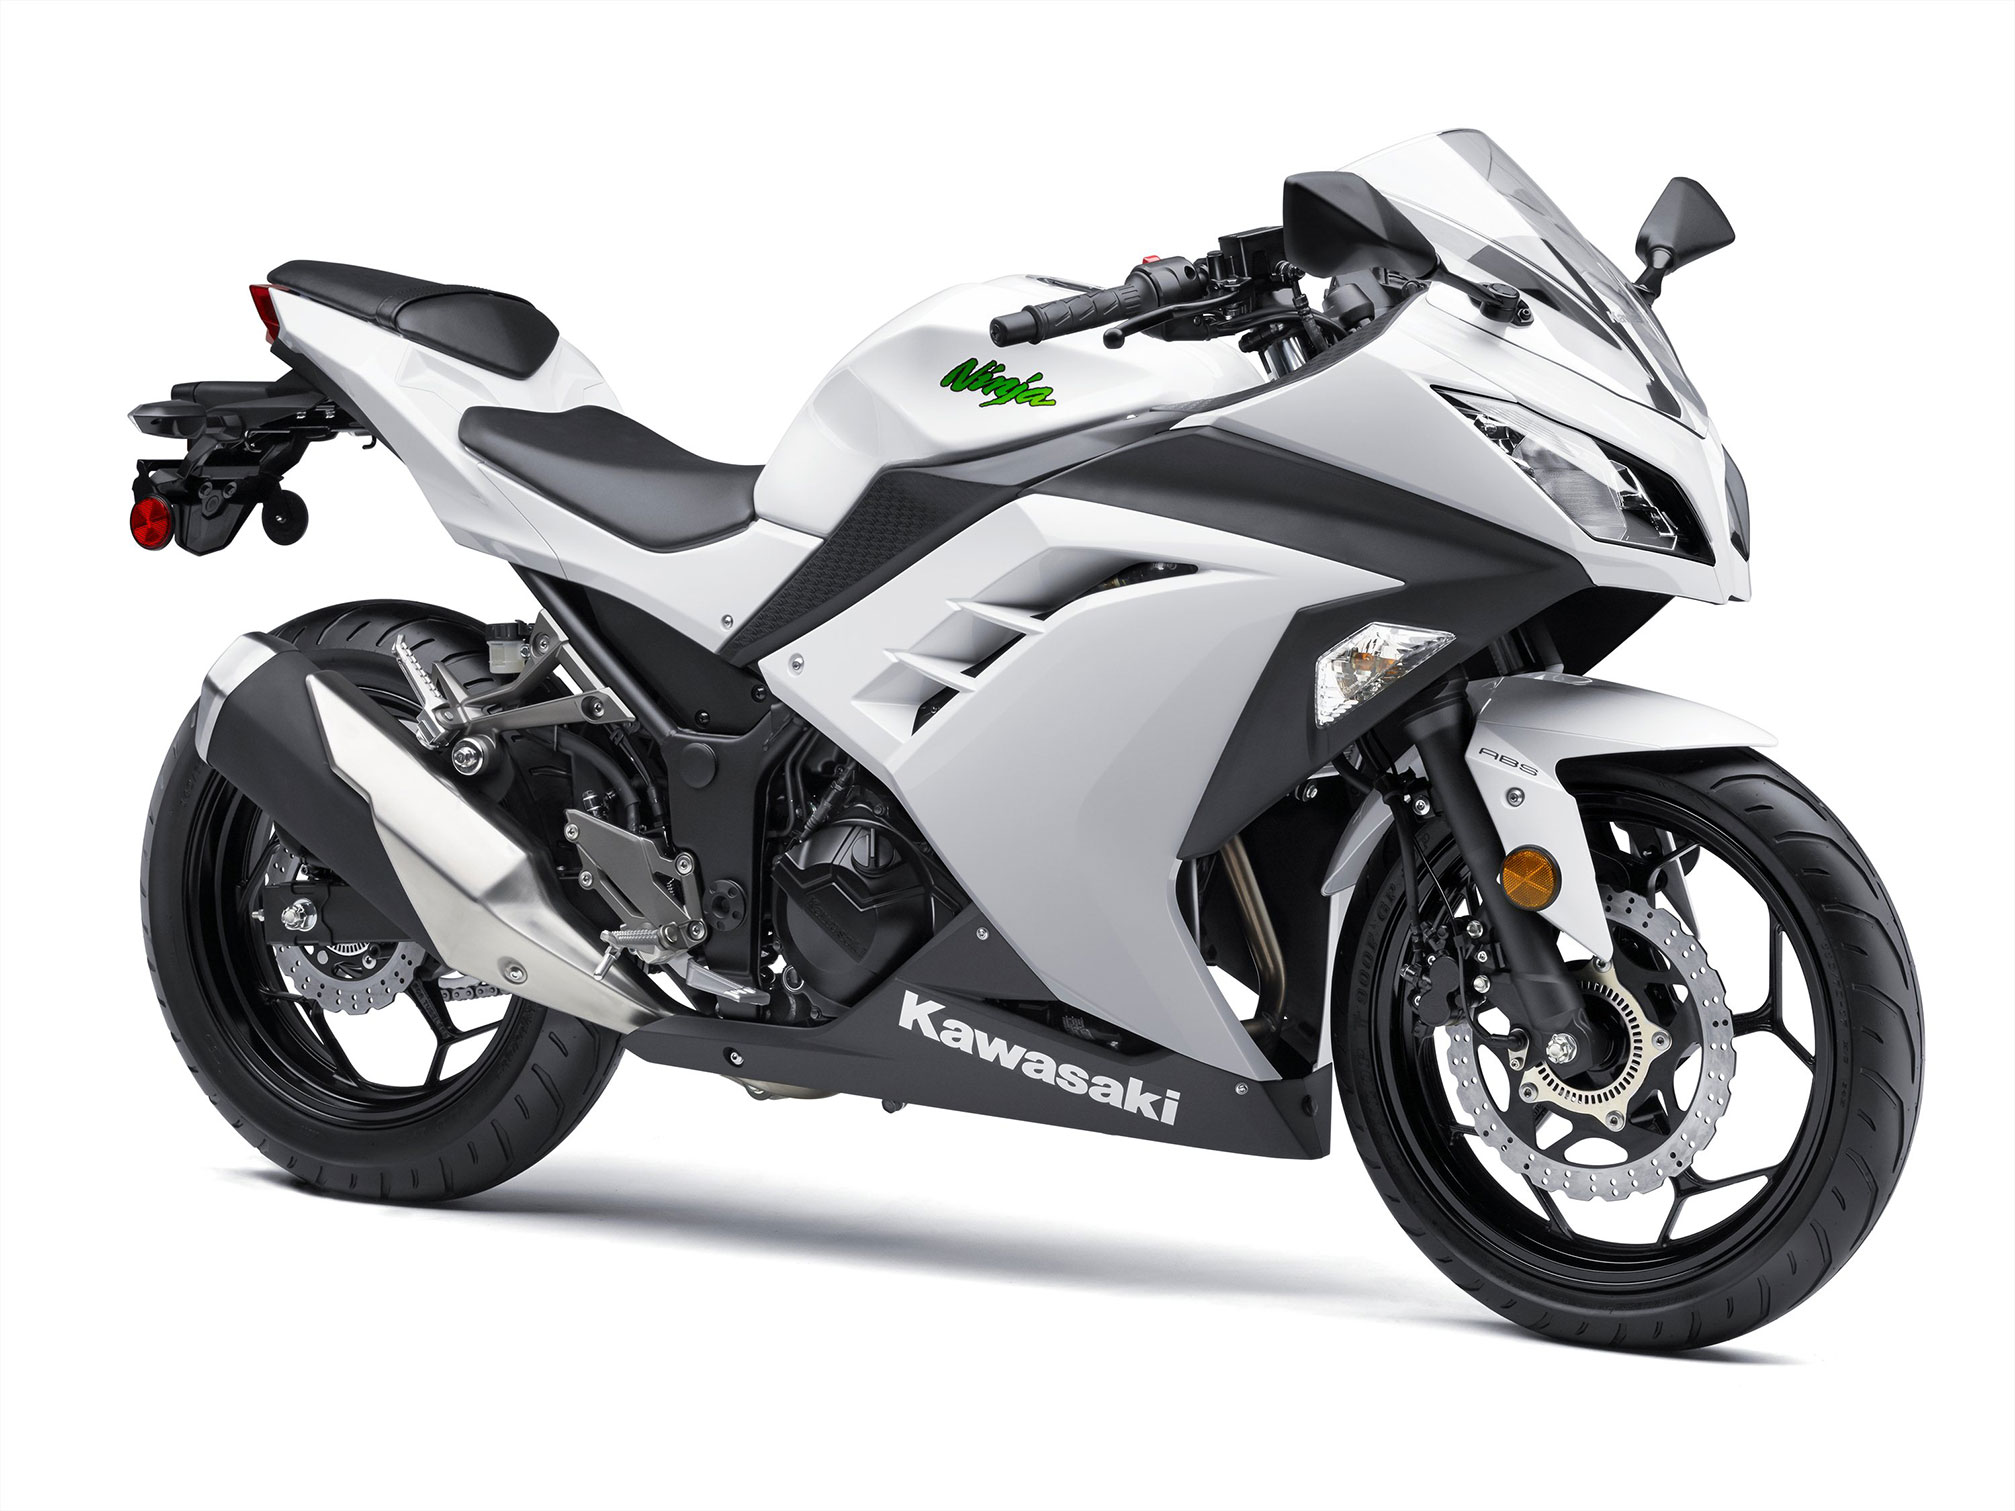 2015 kawasaki ninja 300 abs review. Black Bedroom Furniture Sets. Home Design Ideas